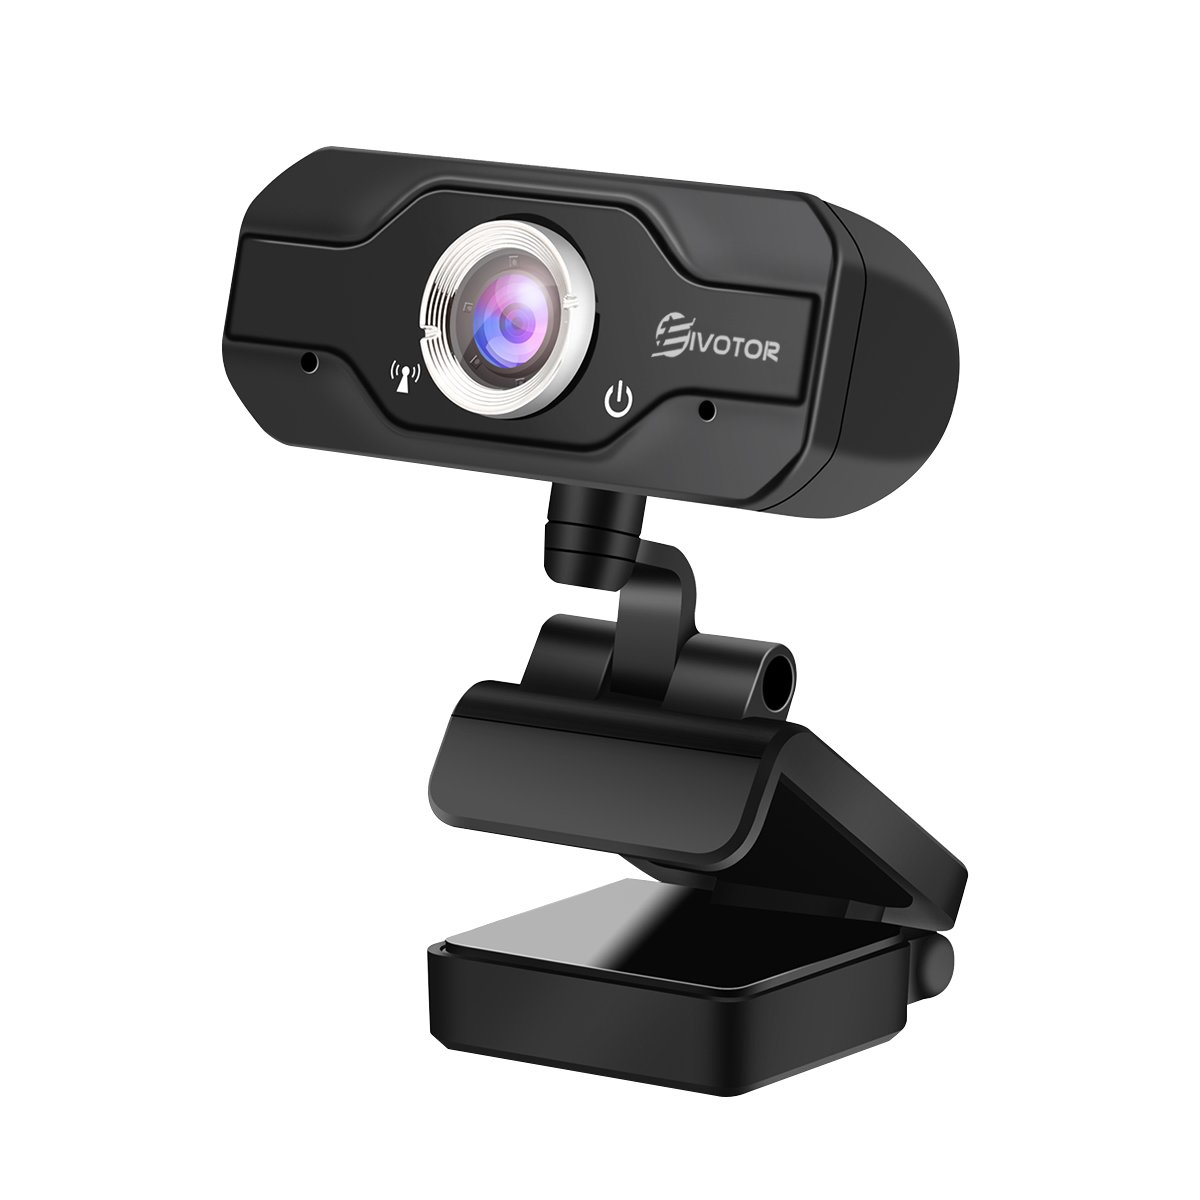 720P HD Webcam, EIVOTOR USB Mini Computer Camera with Built-in Microphone for Laptops and Desktop,Black by EIVOTOR (Image #1)